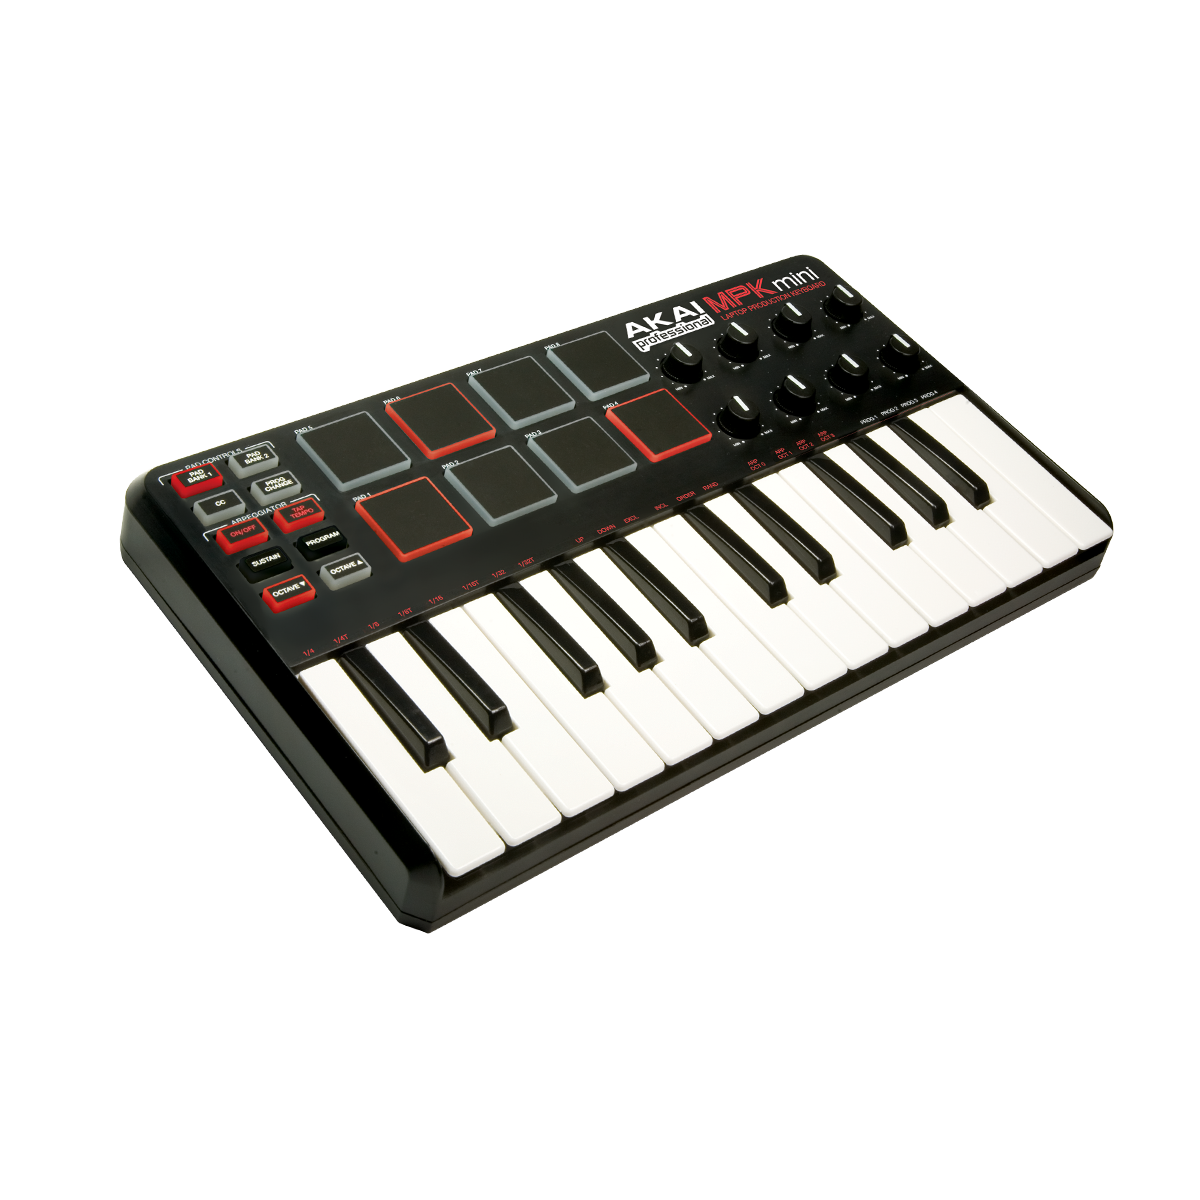 akai mpk mini midi usb controller keyboard midi controllers from inta audio uk. Black Bedroom Furniture Sets. Home Design Ideas